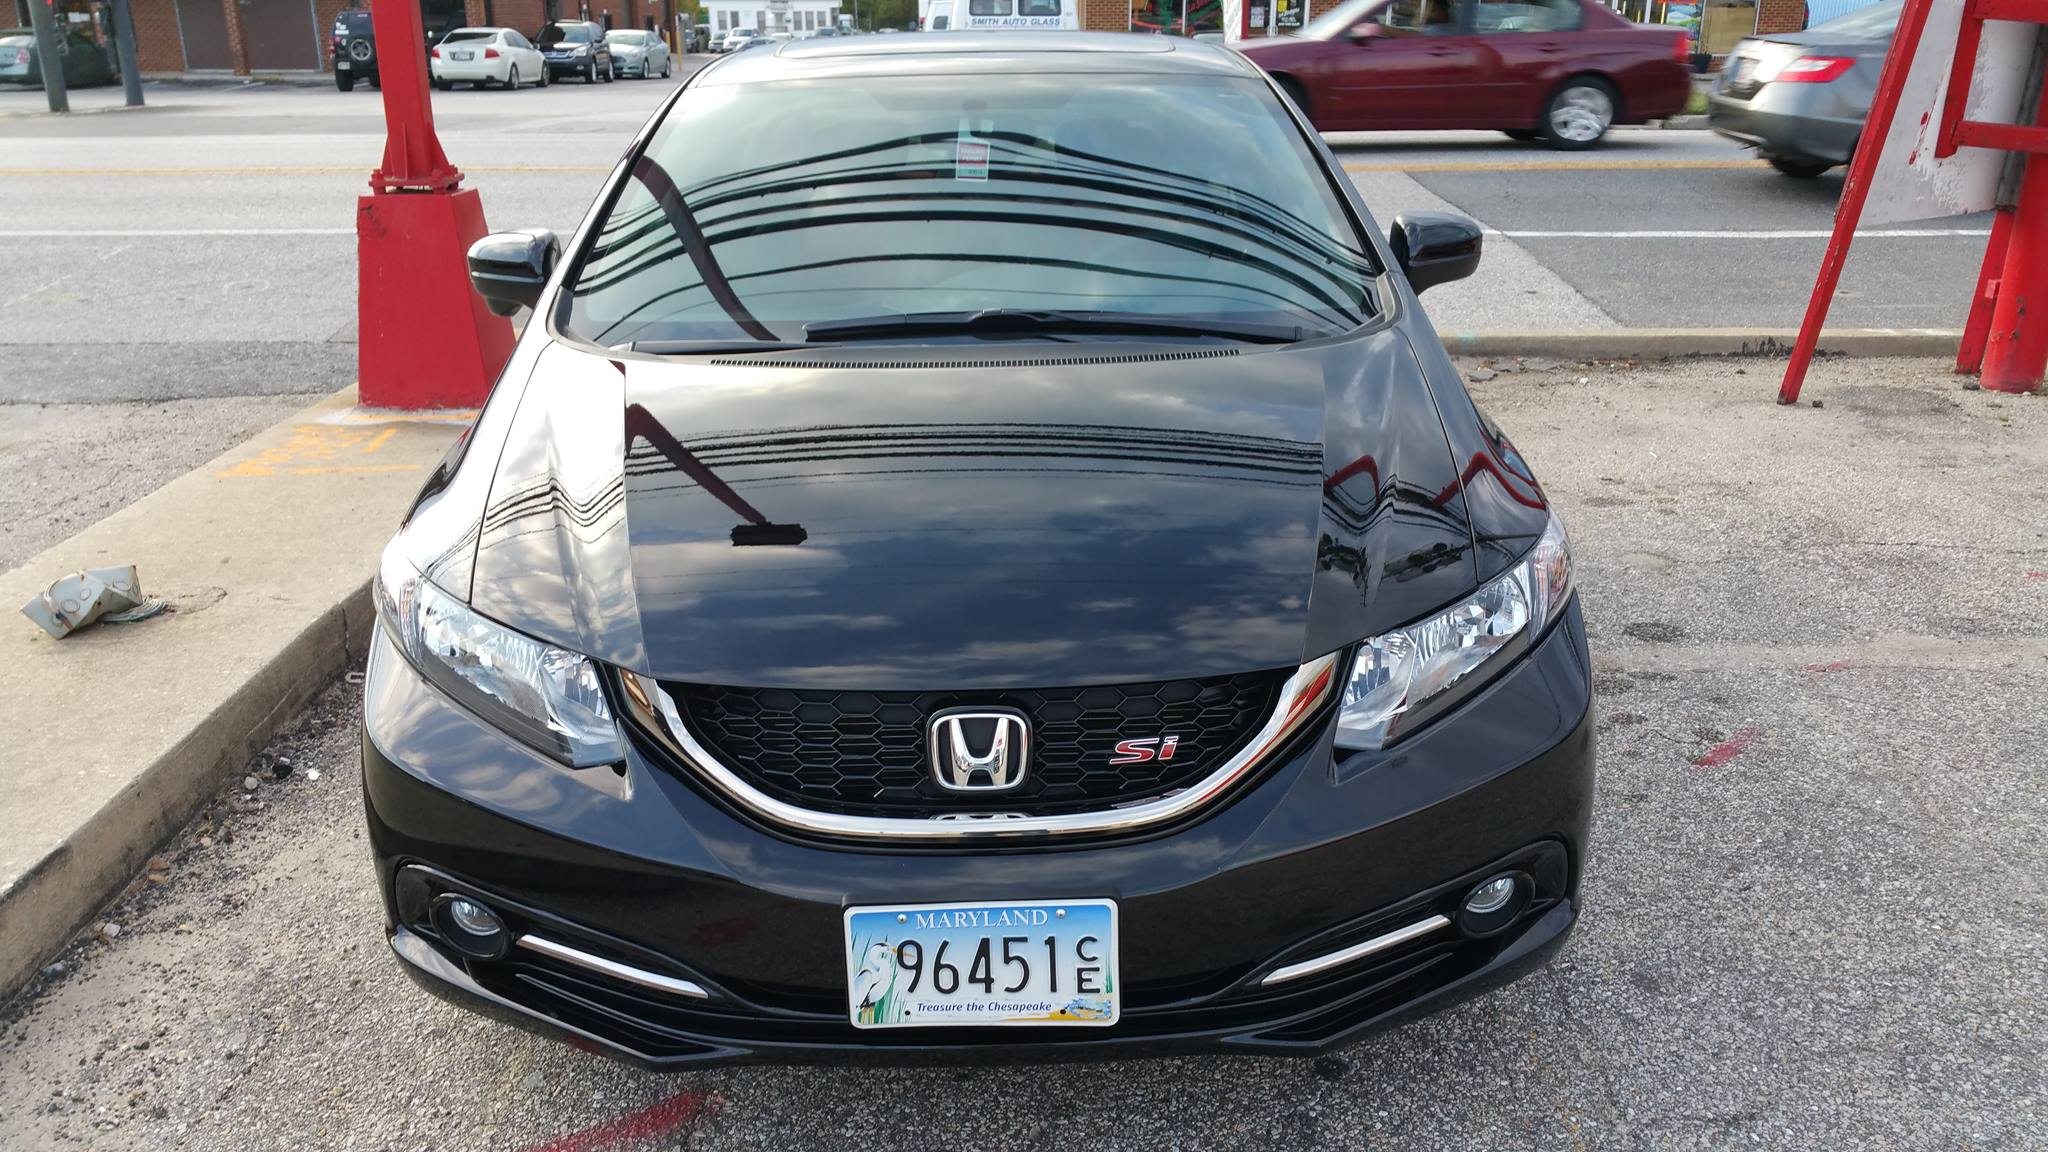 Honda Civic Si Paint Protection Hood Fenders Bumper Mirrors And